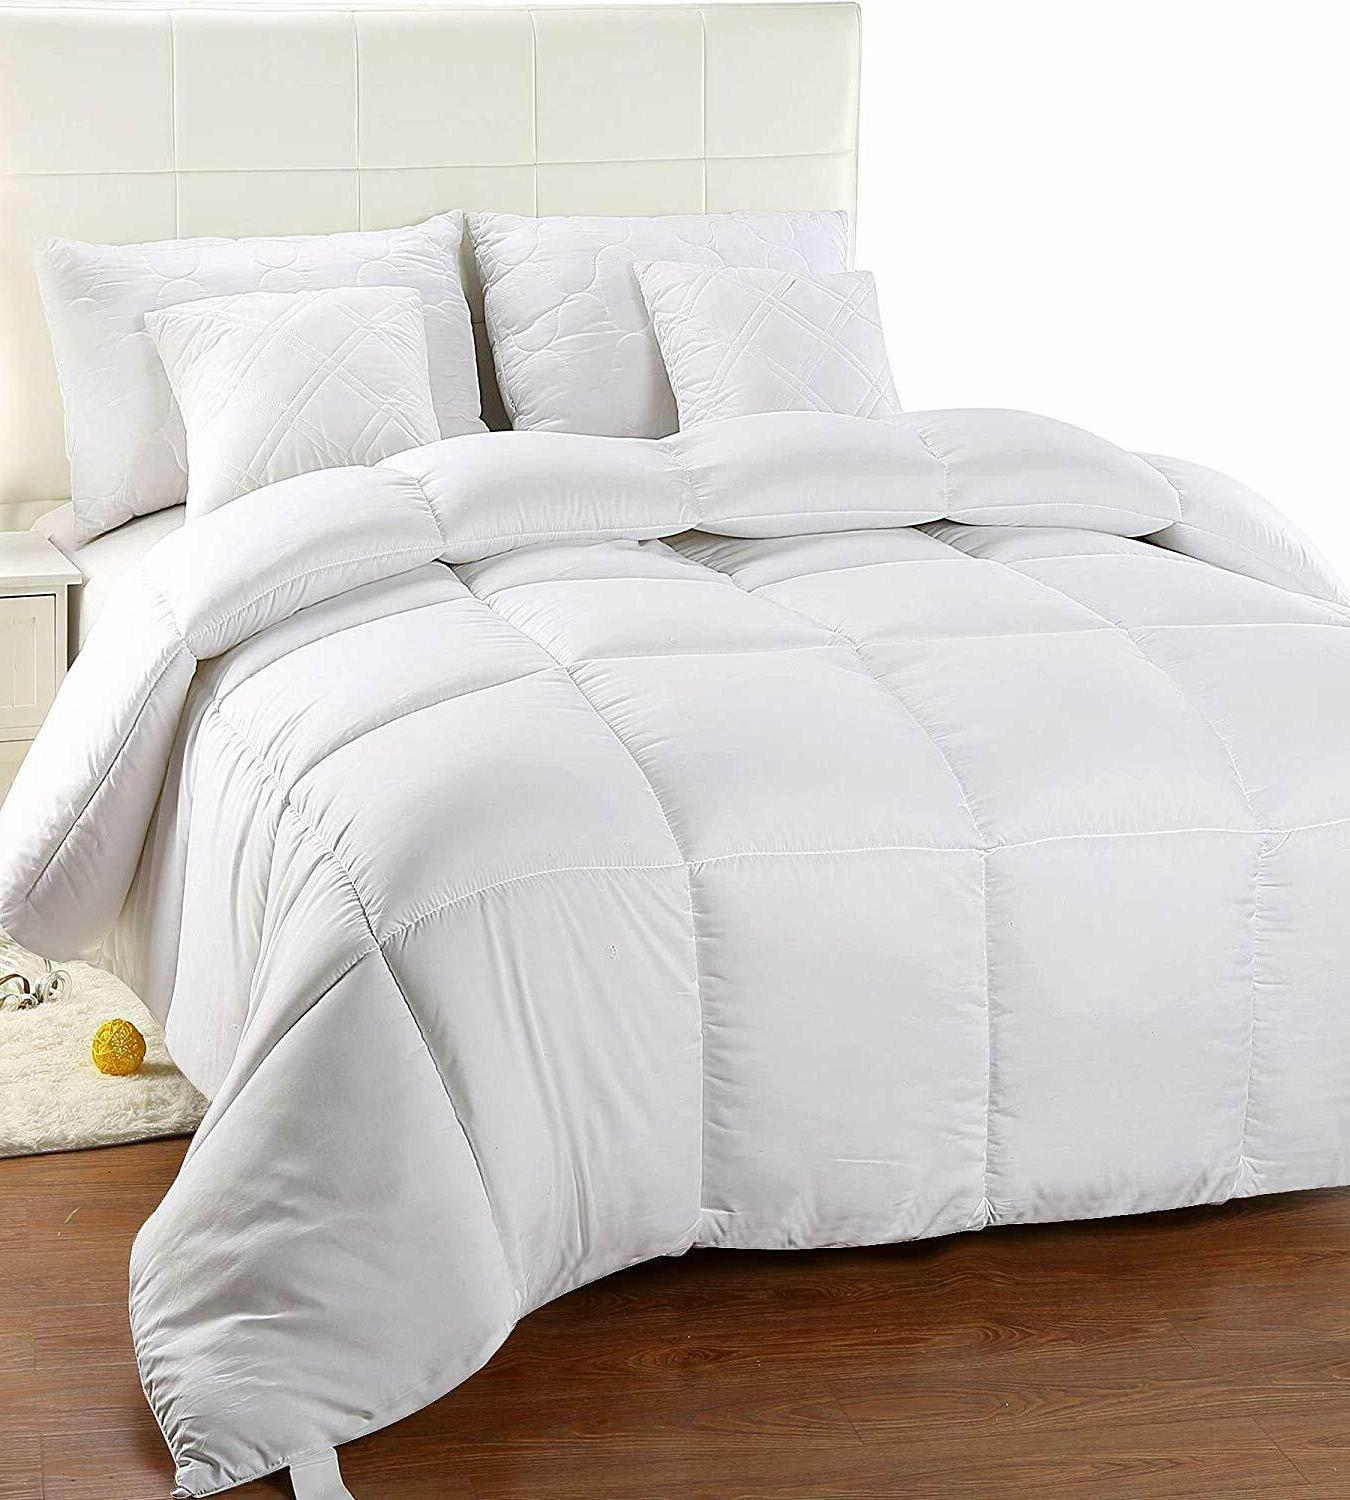 Utopia Bedding Down Alternative Comforter-White, Queen-All S